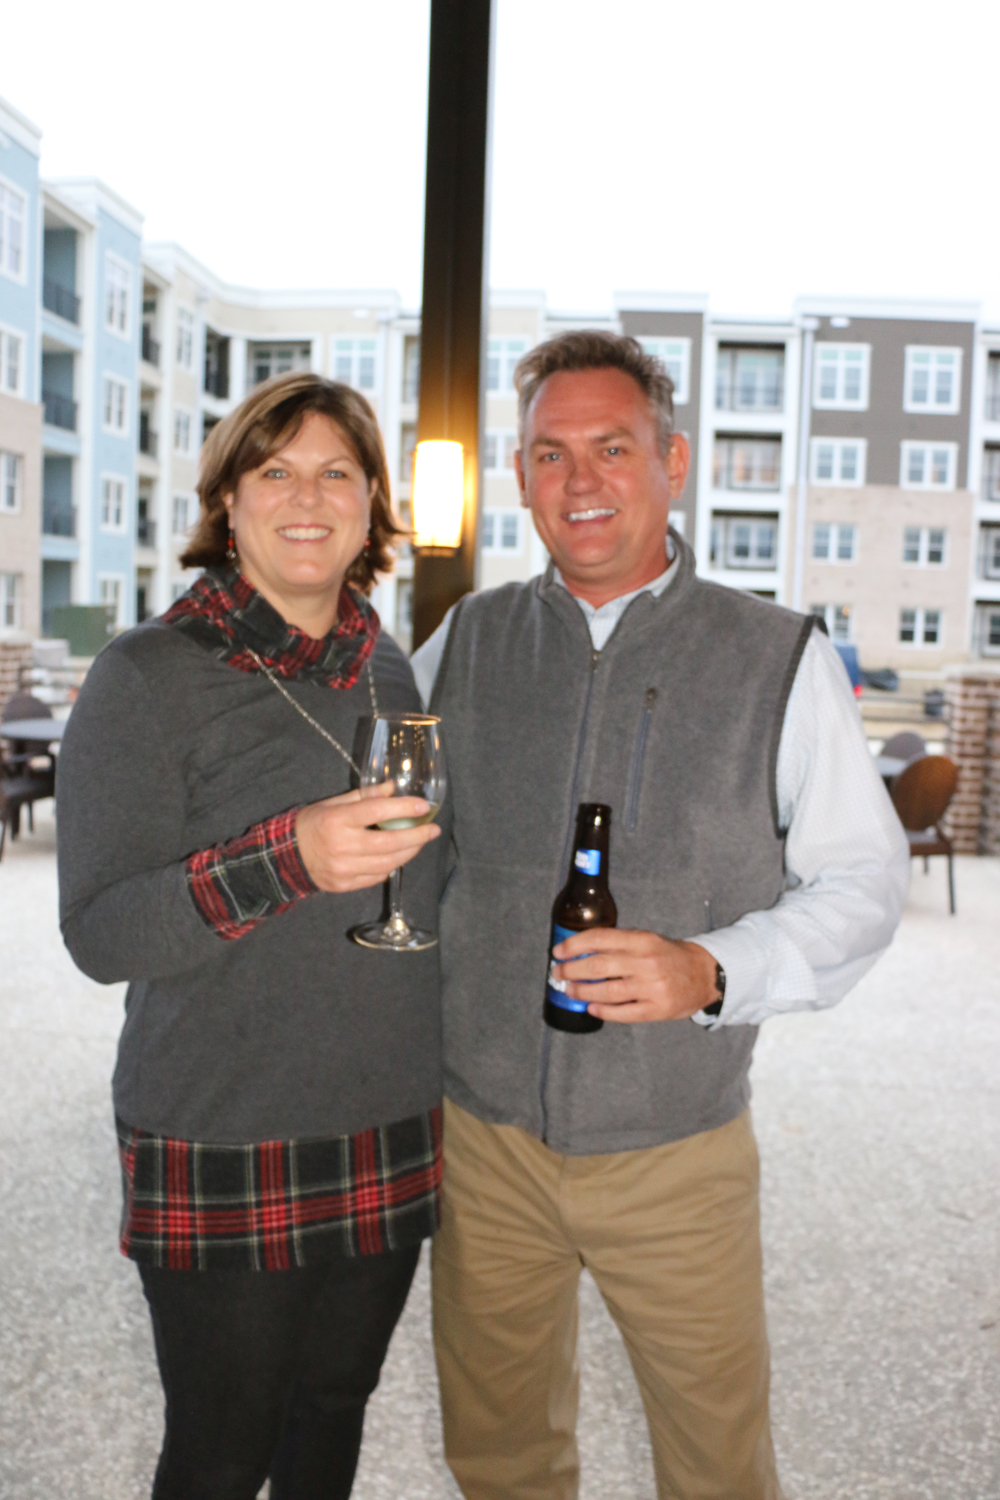 DIBA members and guests also enjoyed talking on the patio at Bin 526. Pictured are Lee Harper and Derrick Lemmon.